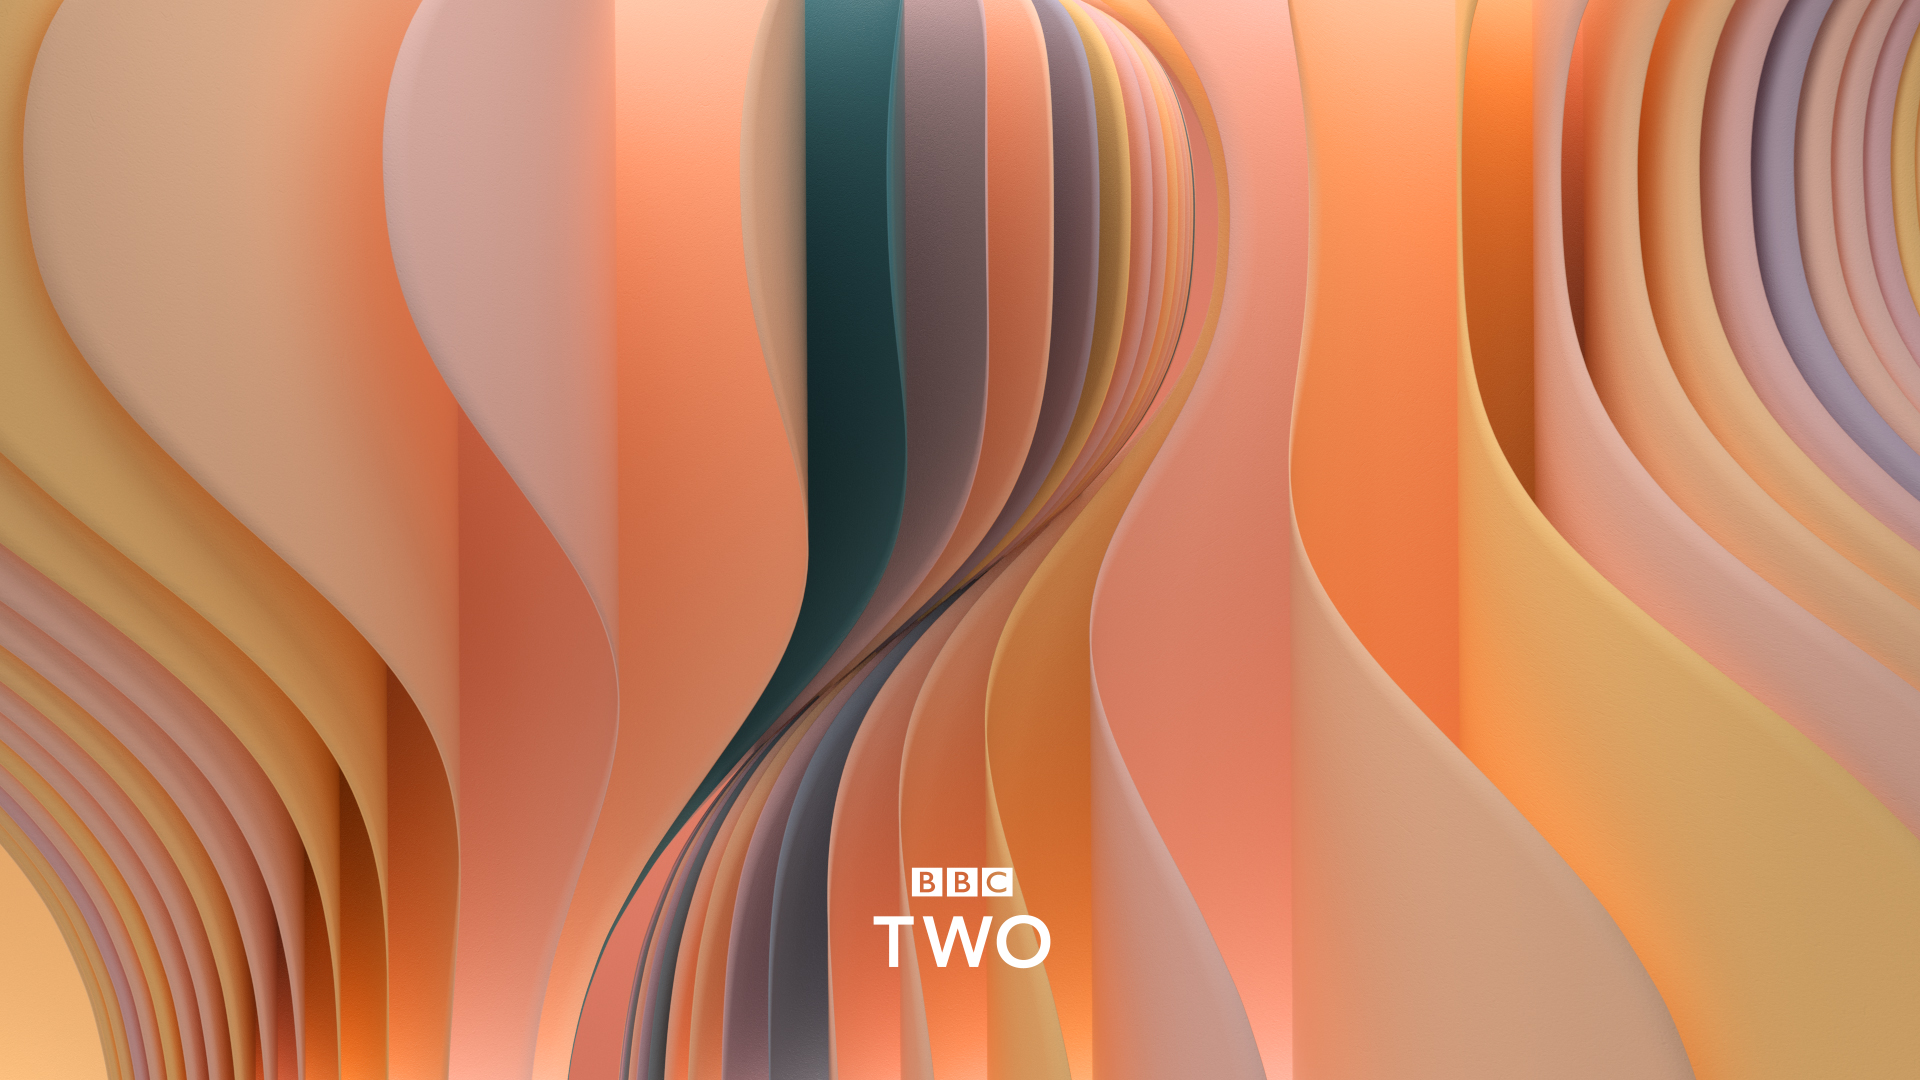 BBC_two_05